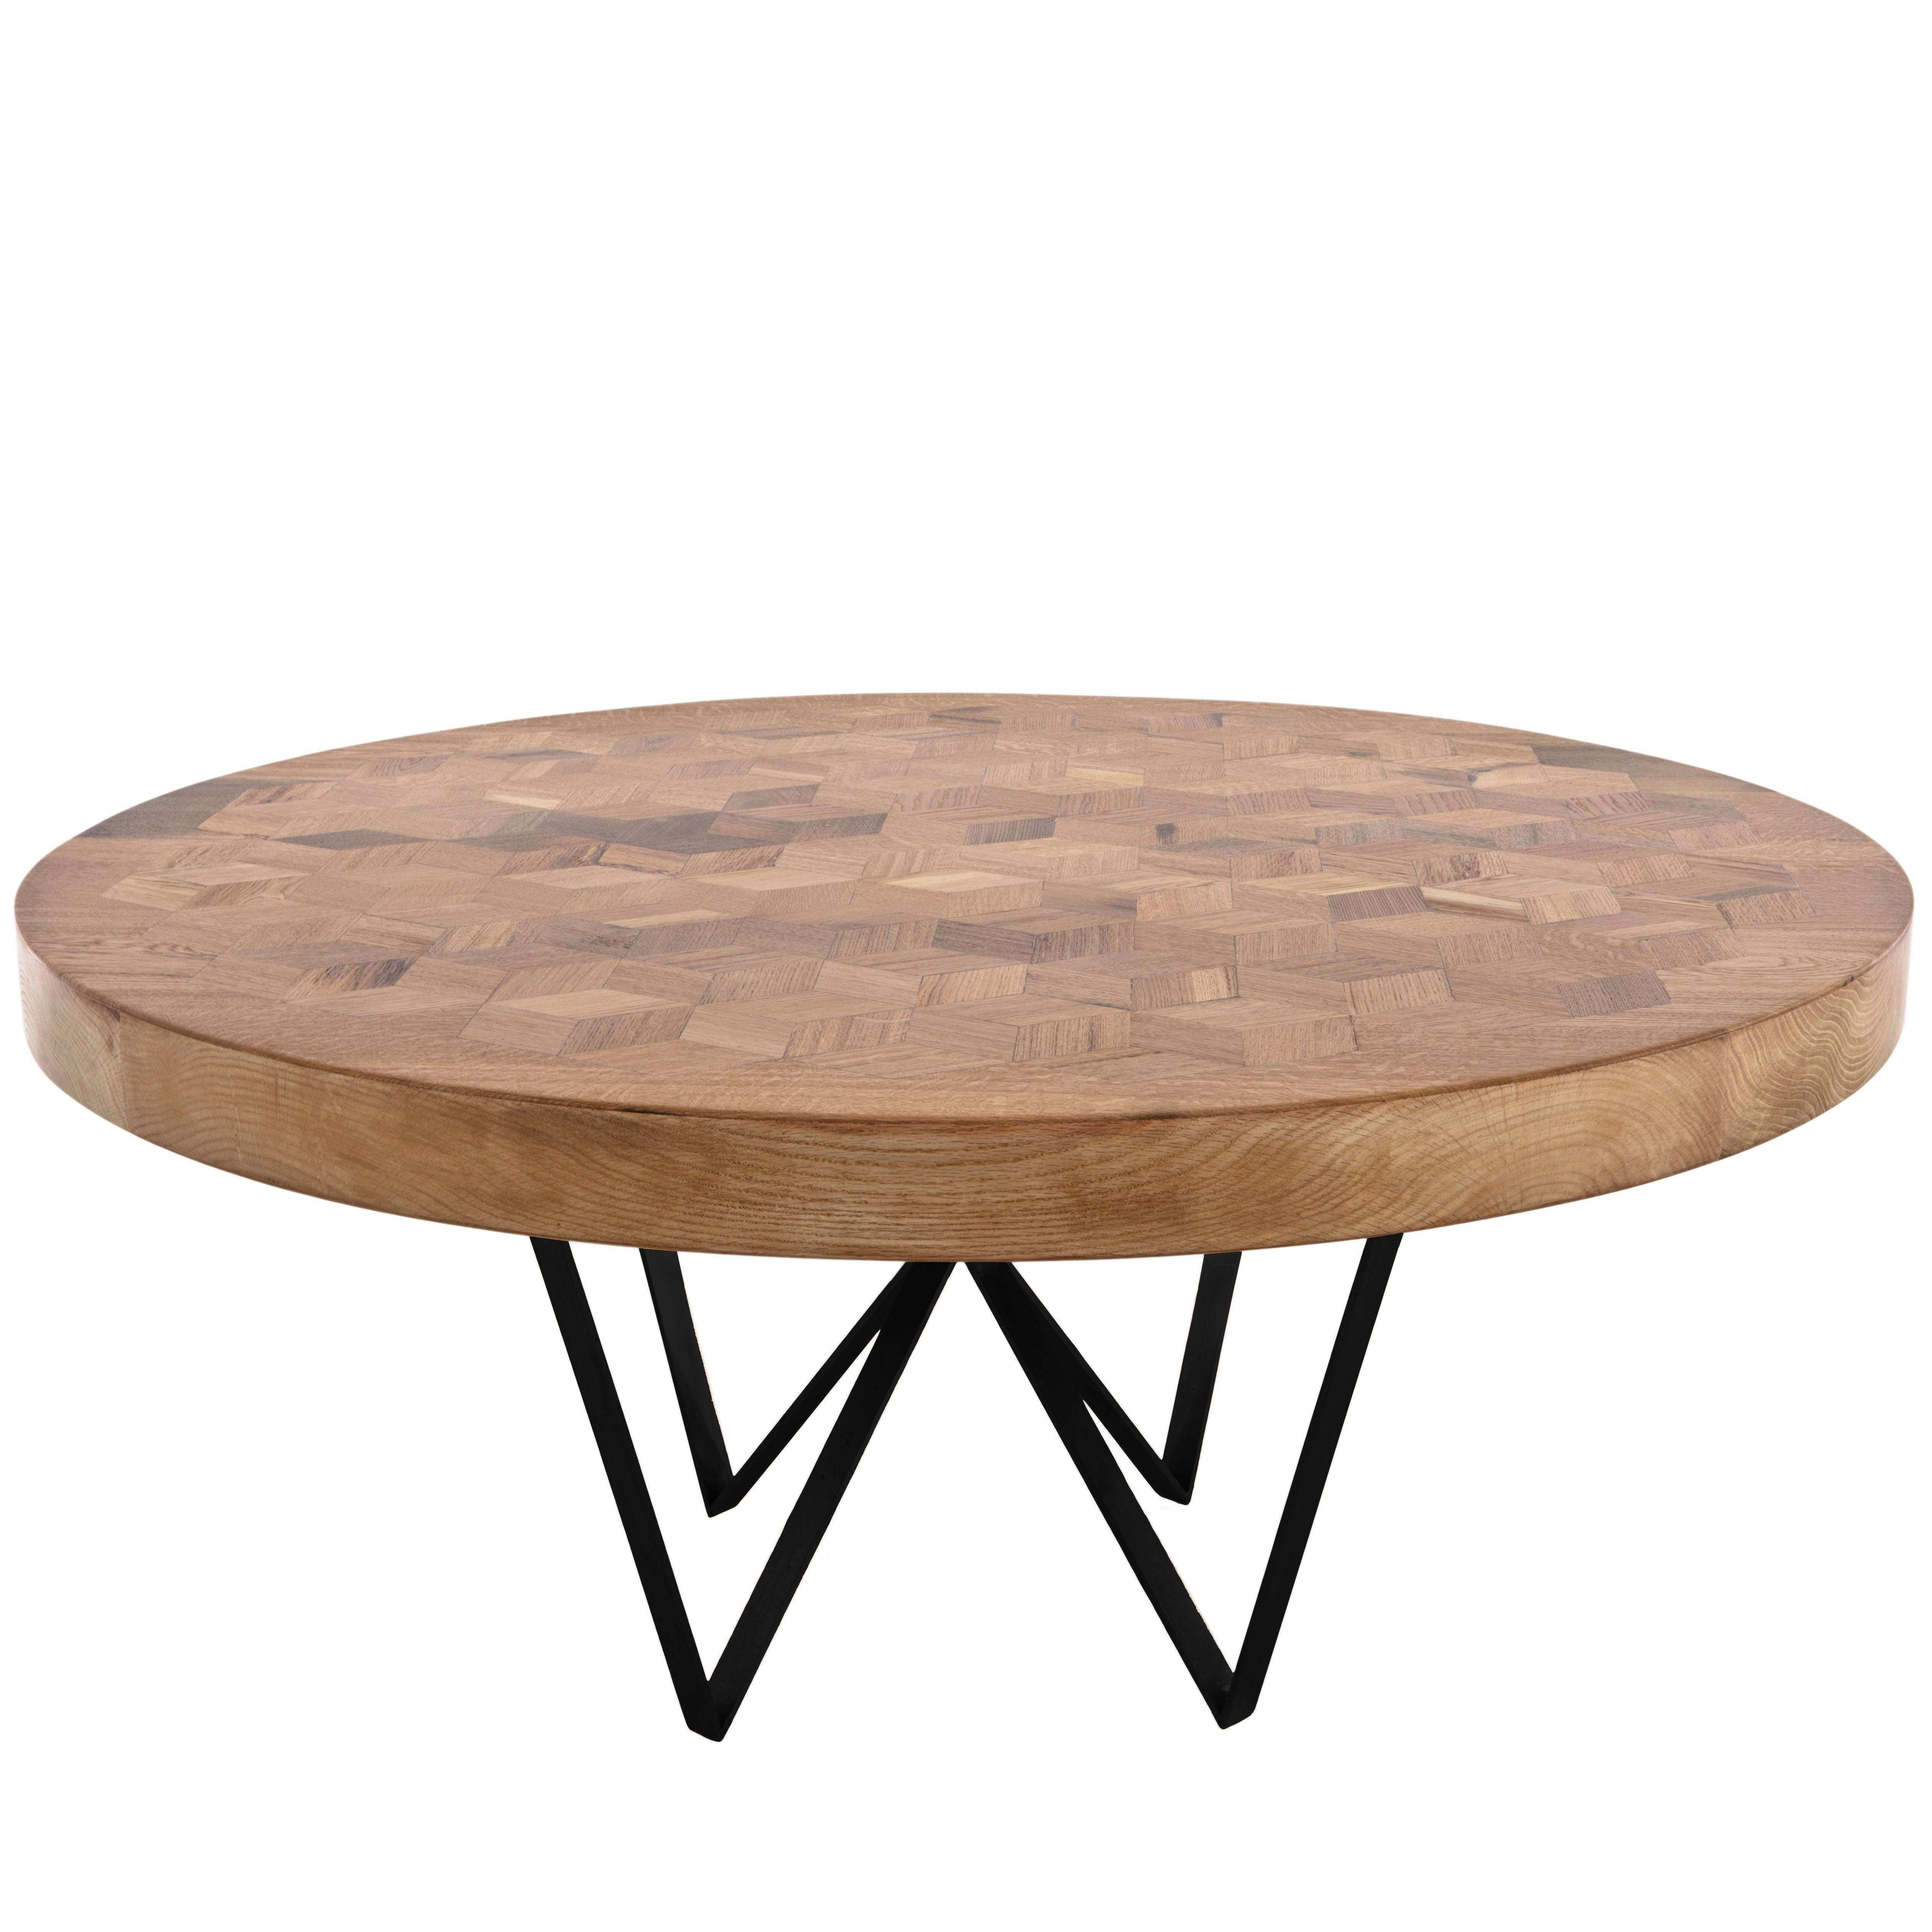 Maurits Round Marquetry Table in Reclaimed Oak with Metal Legs